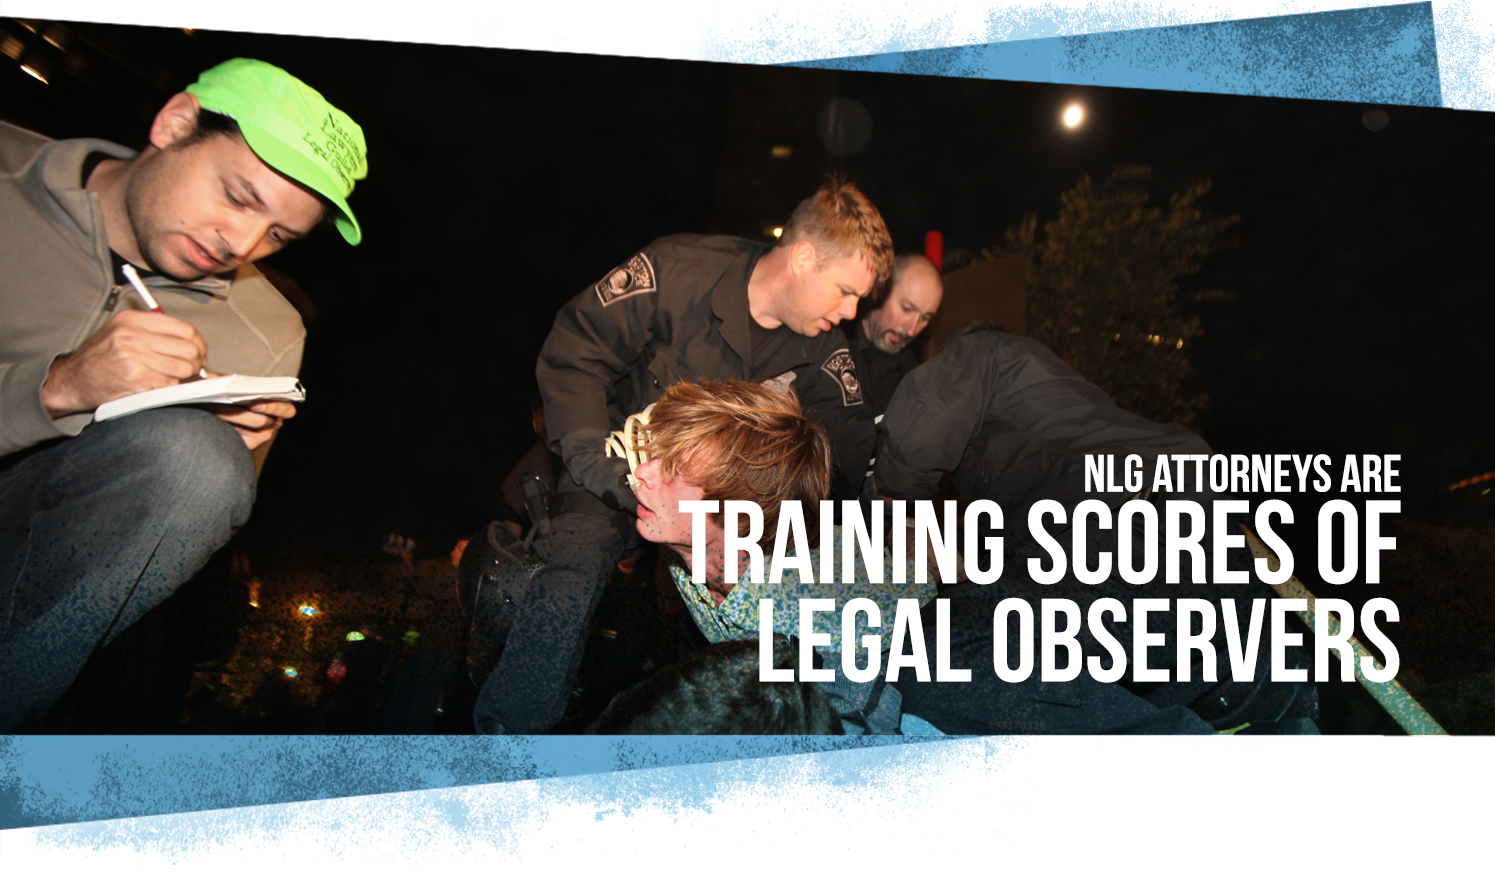 Training Scores of Legal Observers